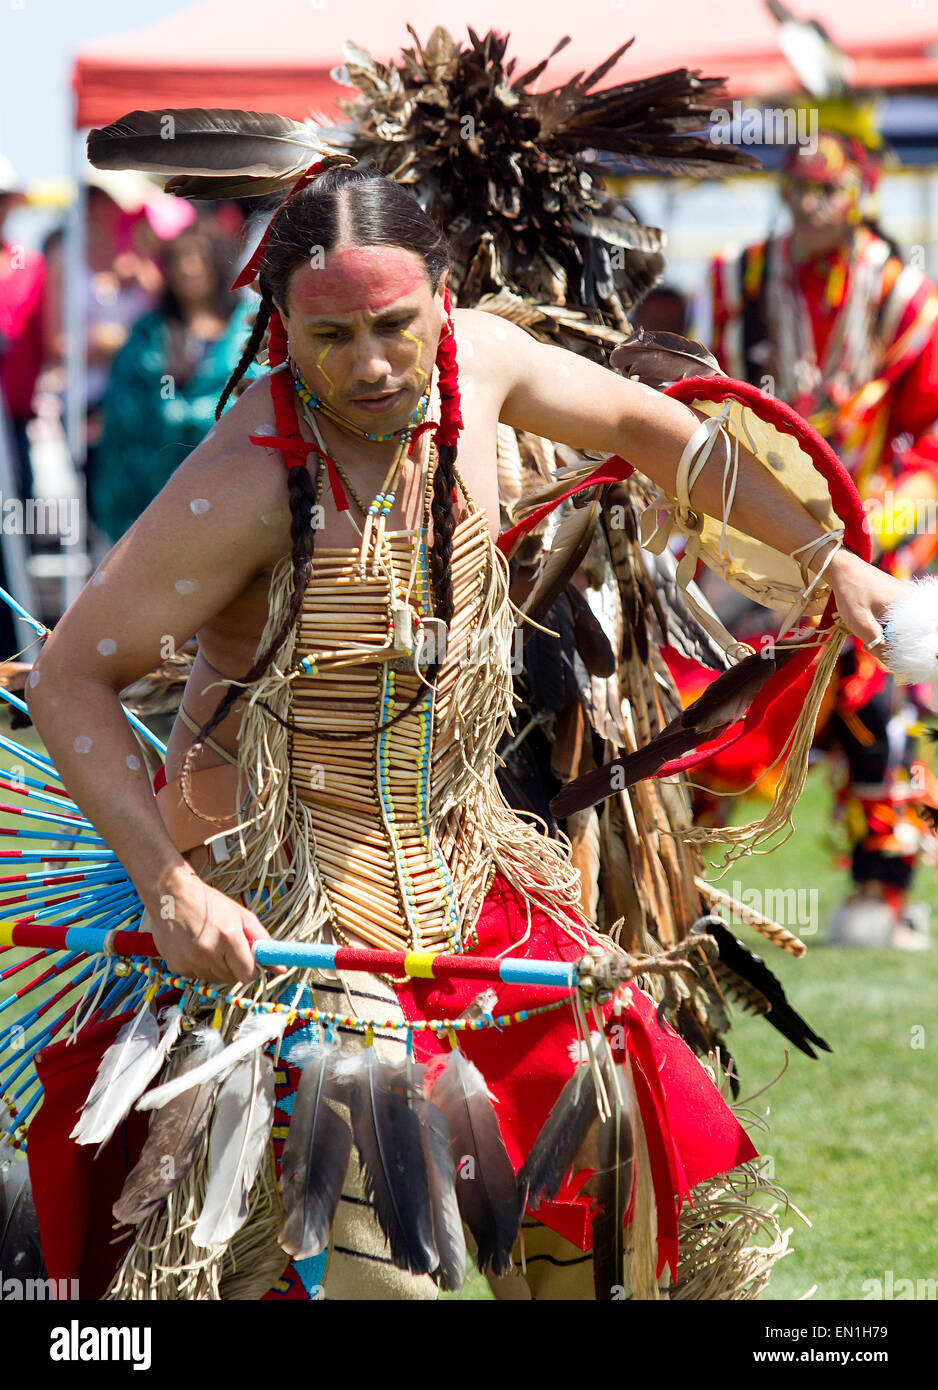 Native American Pow-Wow dancer - Stock Image